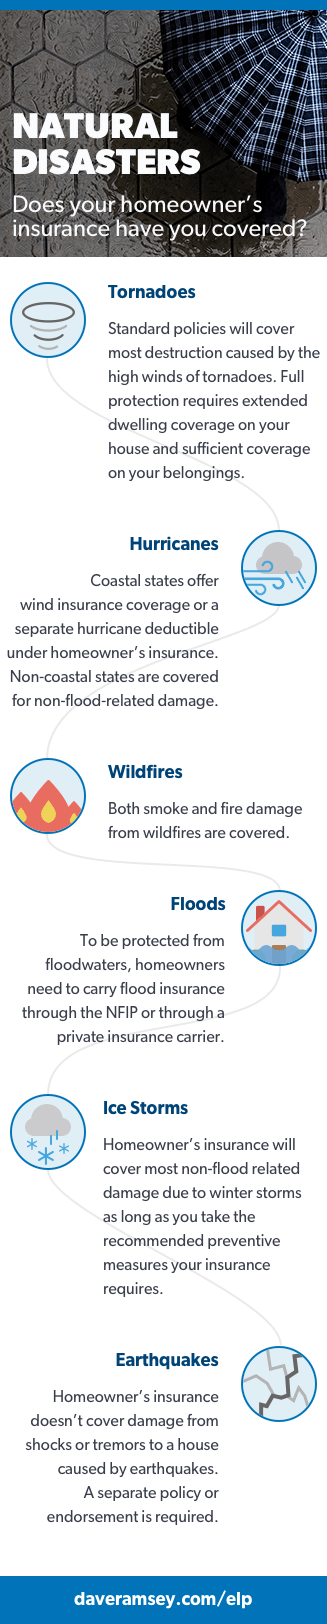 Natural Disasters: Does your homeowner's insurance have you covered?